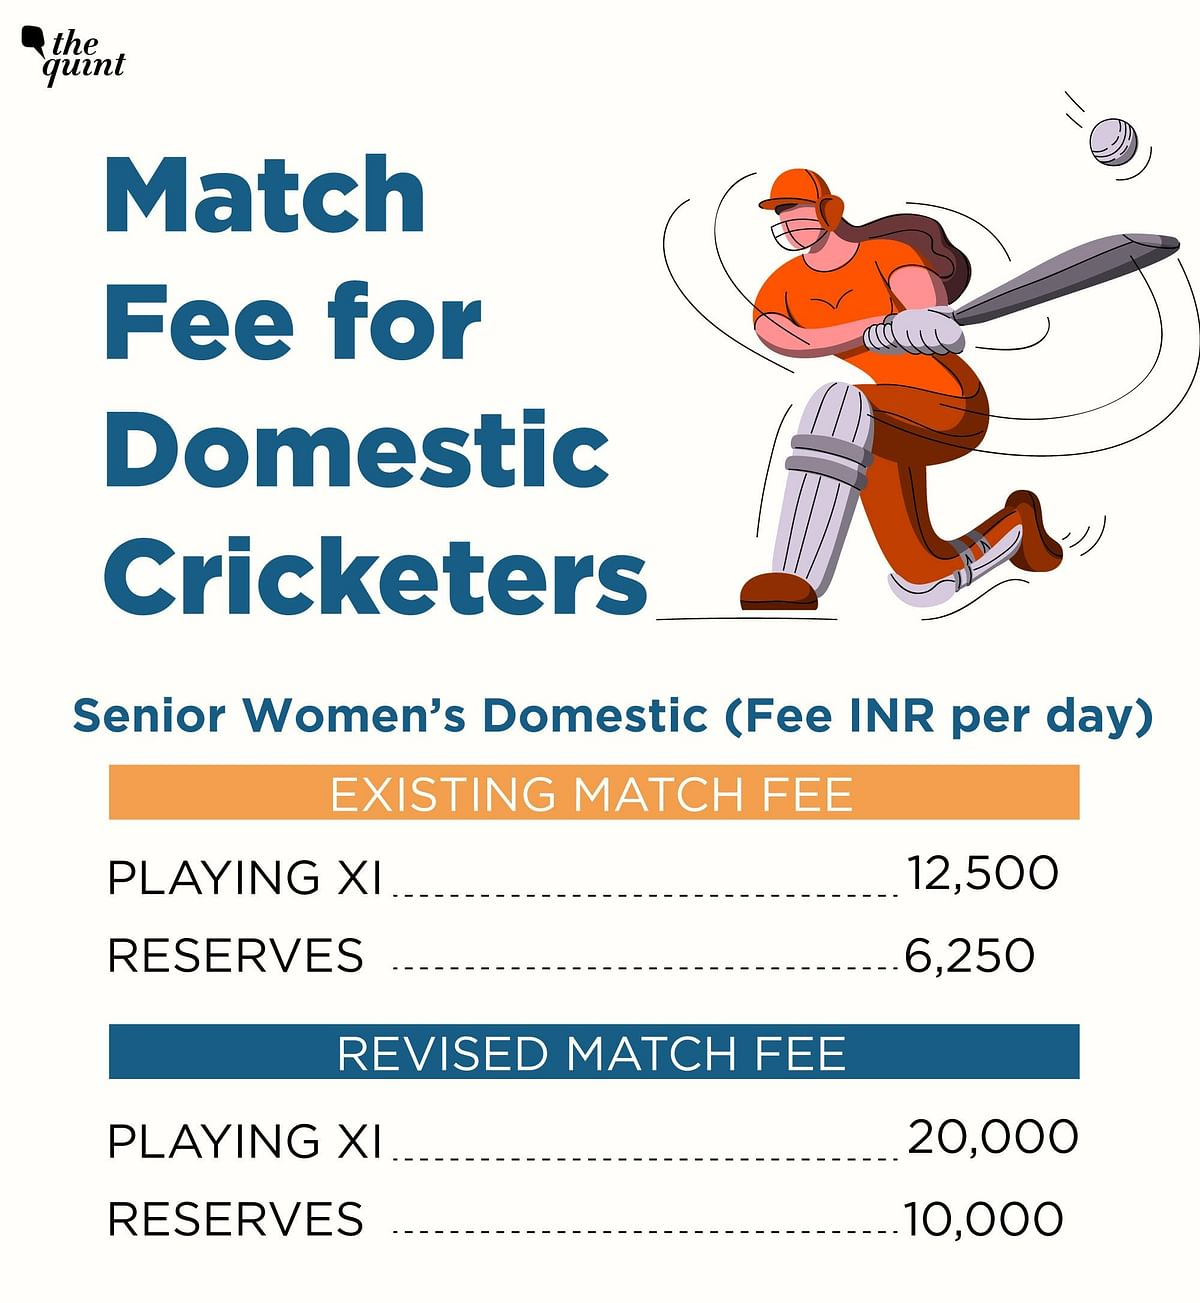 England, Aus and Pak Have Contracts For Domestic Cricketers, Why Not India?